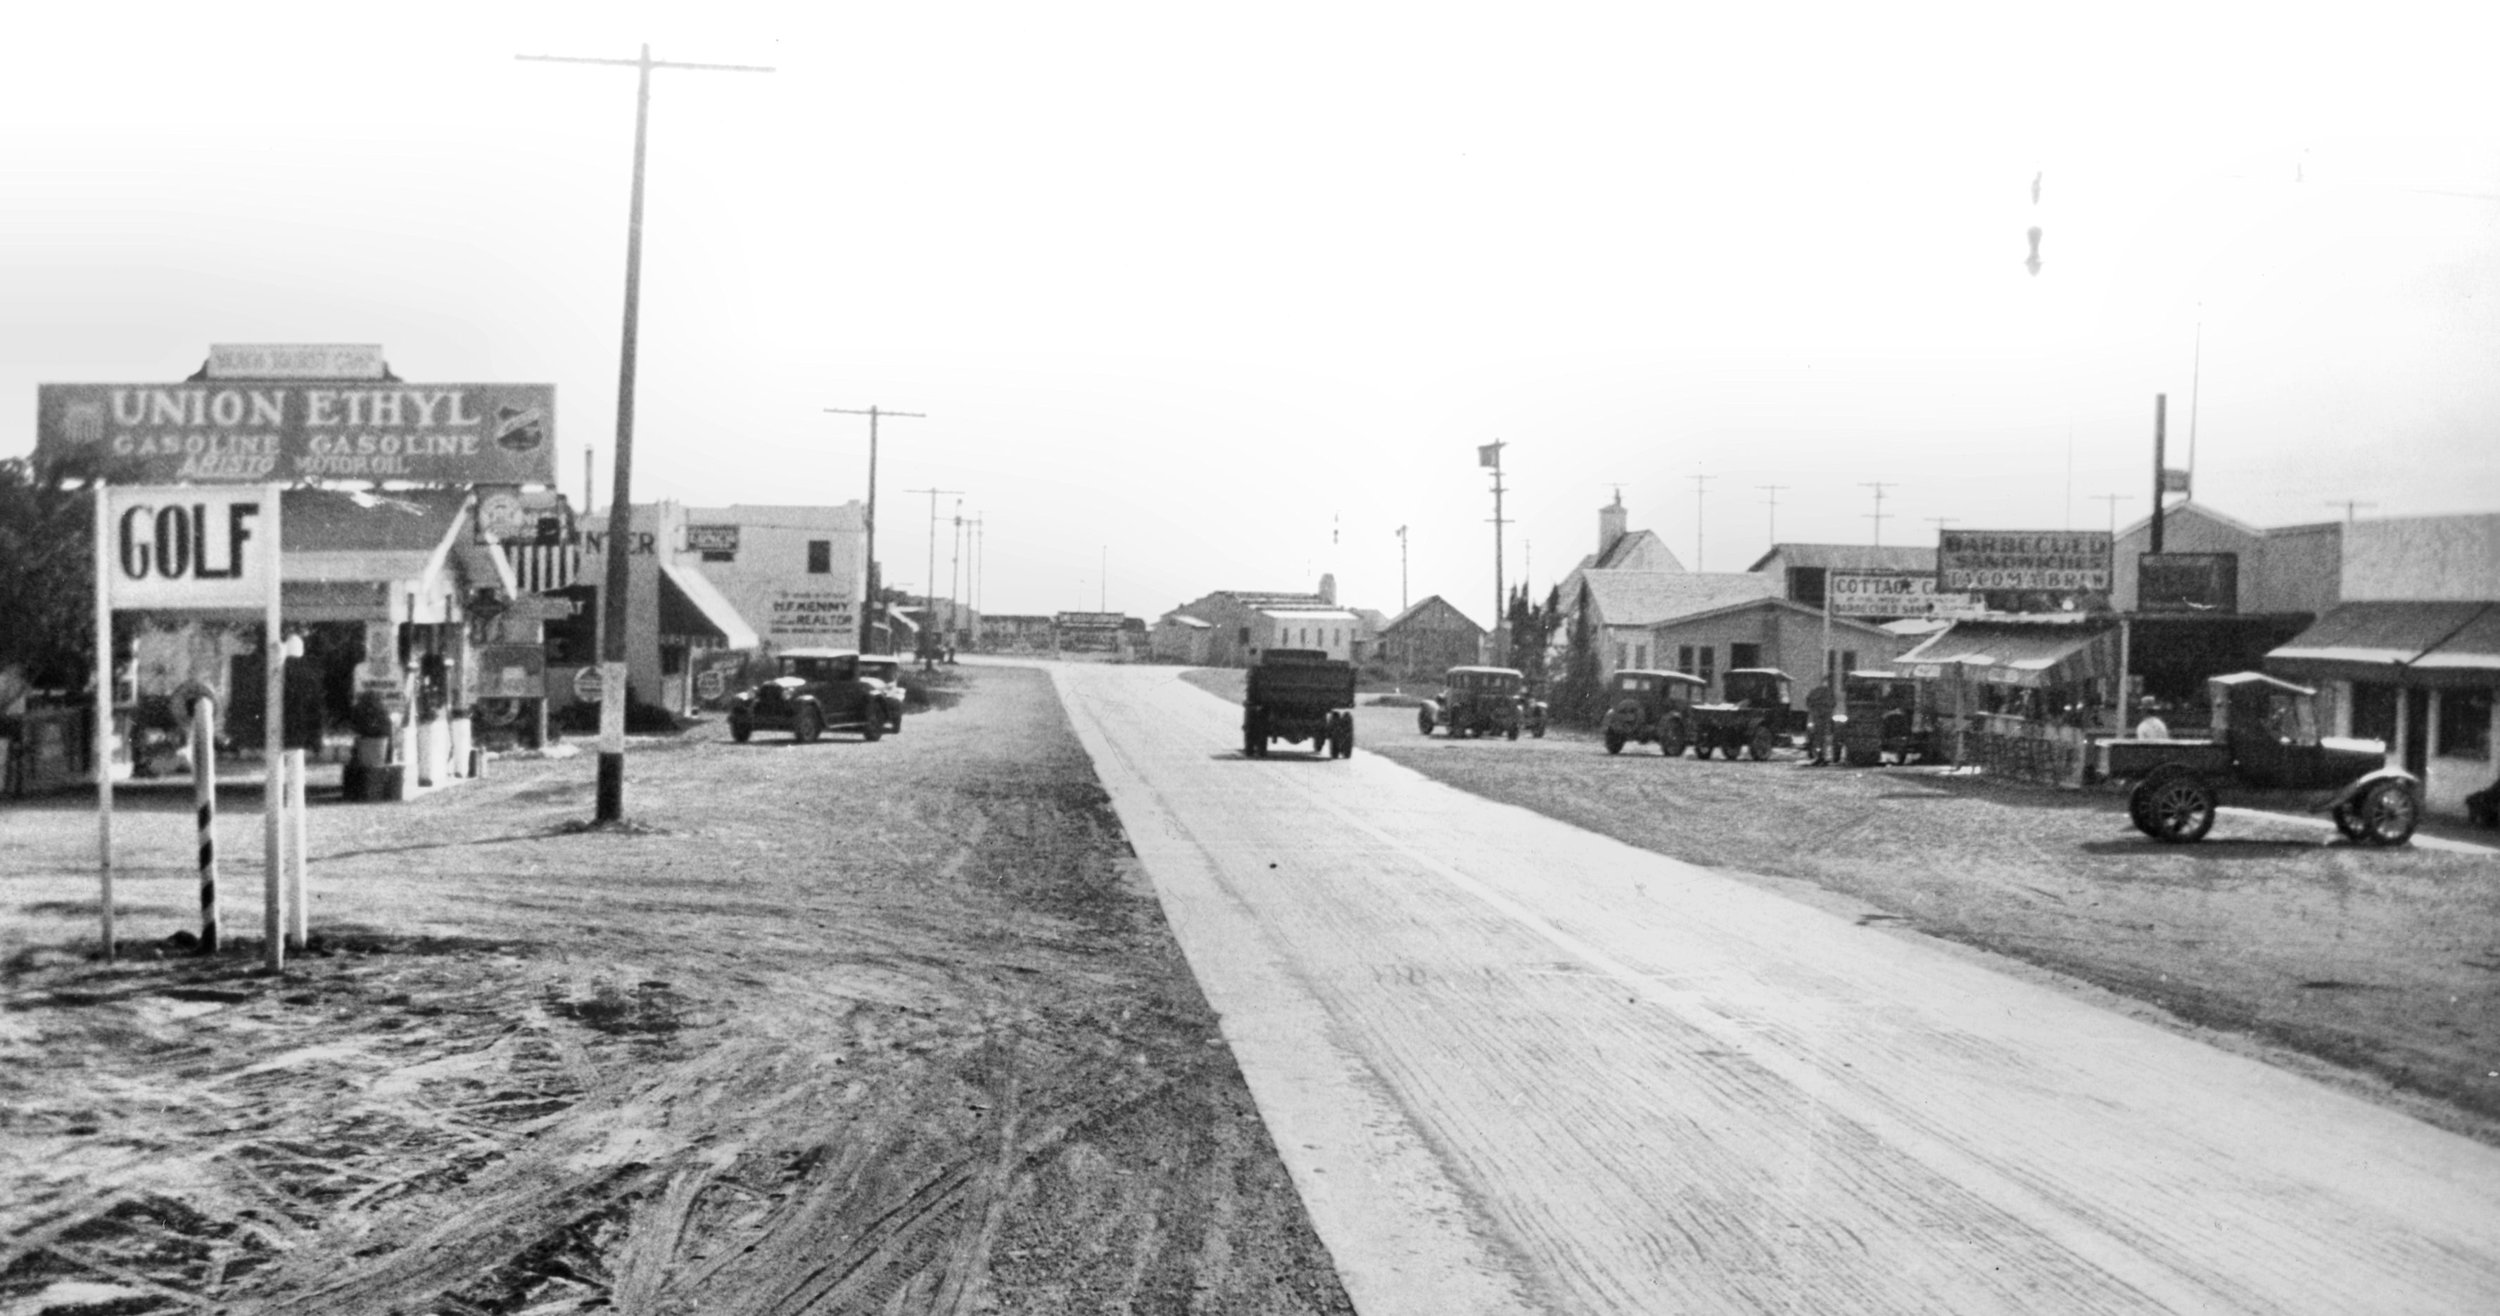 Looking down the Coast Highway through Capistrano Beach, 1930 (Courtesy the Orange County Archives).